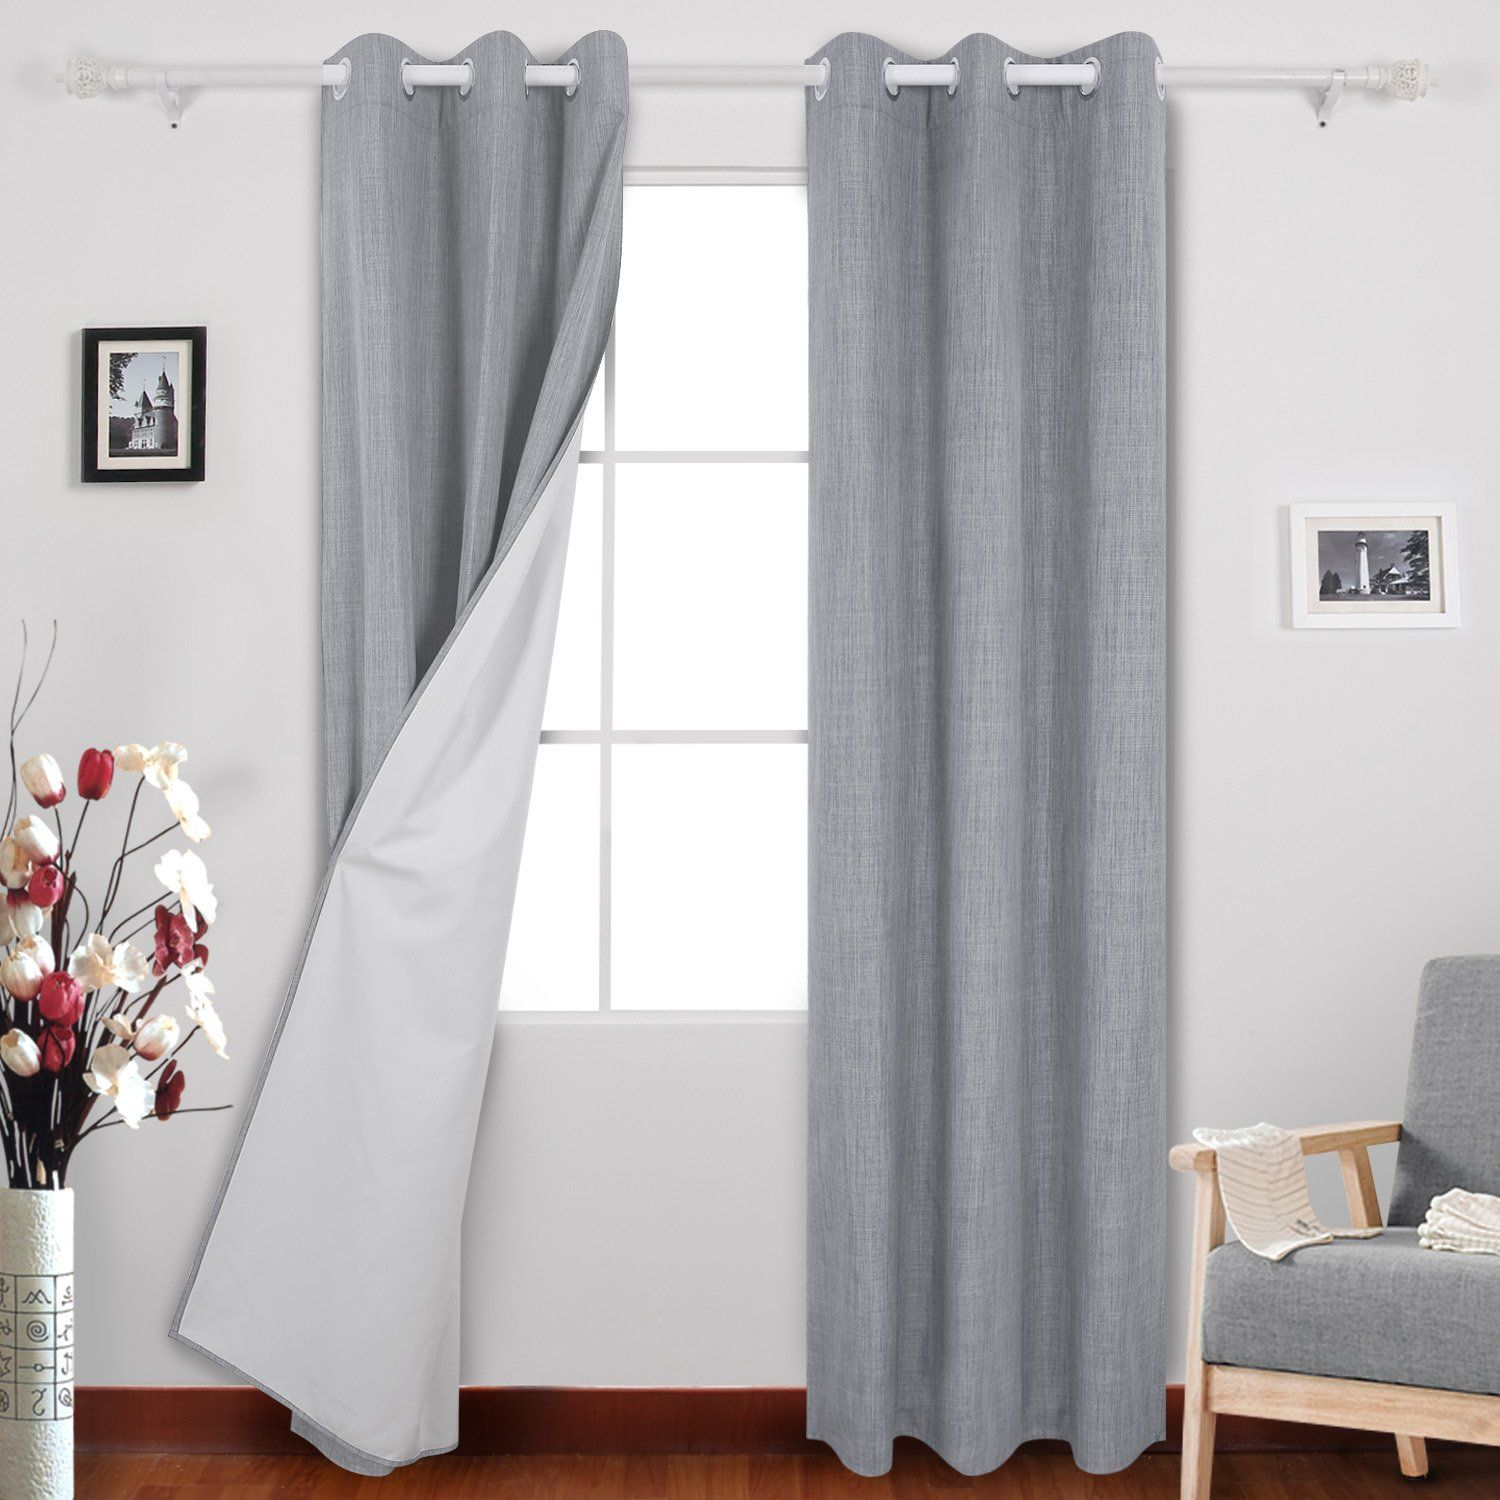 Deconovo Blackout Curtains With White Backing Grommet Top Heavy Thick Room Darkening C Thermal Insulated Blackout Curtains Curtains Insulated Blackout Curtains